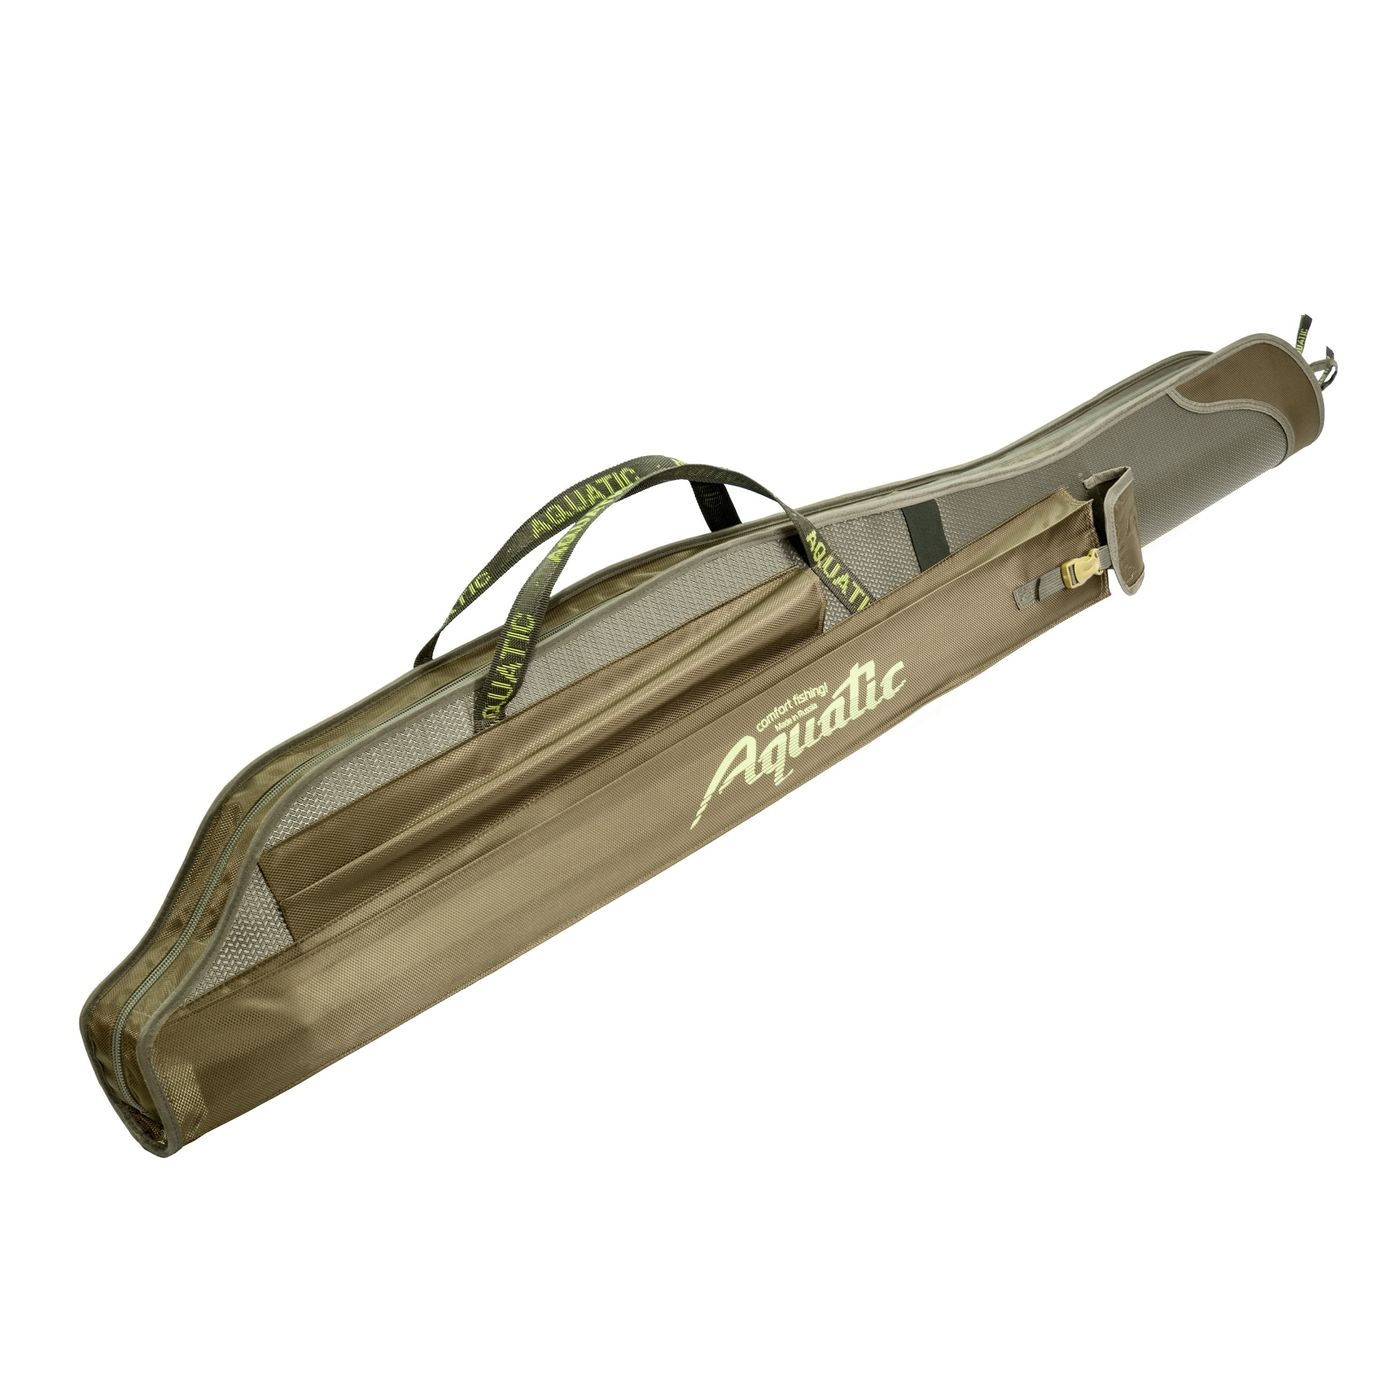 Soft Case For Fishing Rods Aquatic H-01 (160 Cm) H-01 160